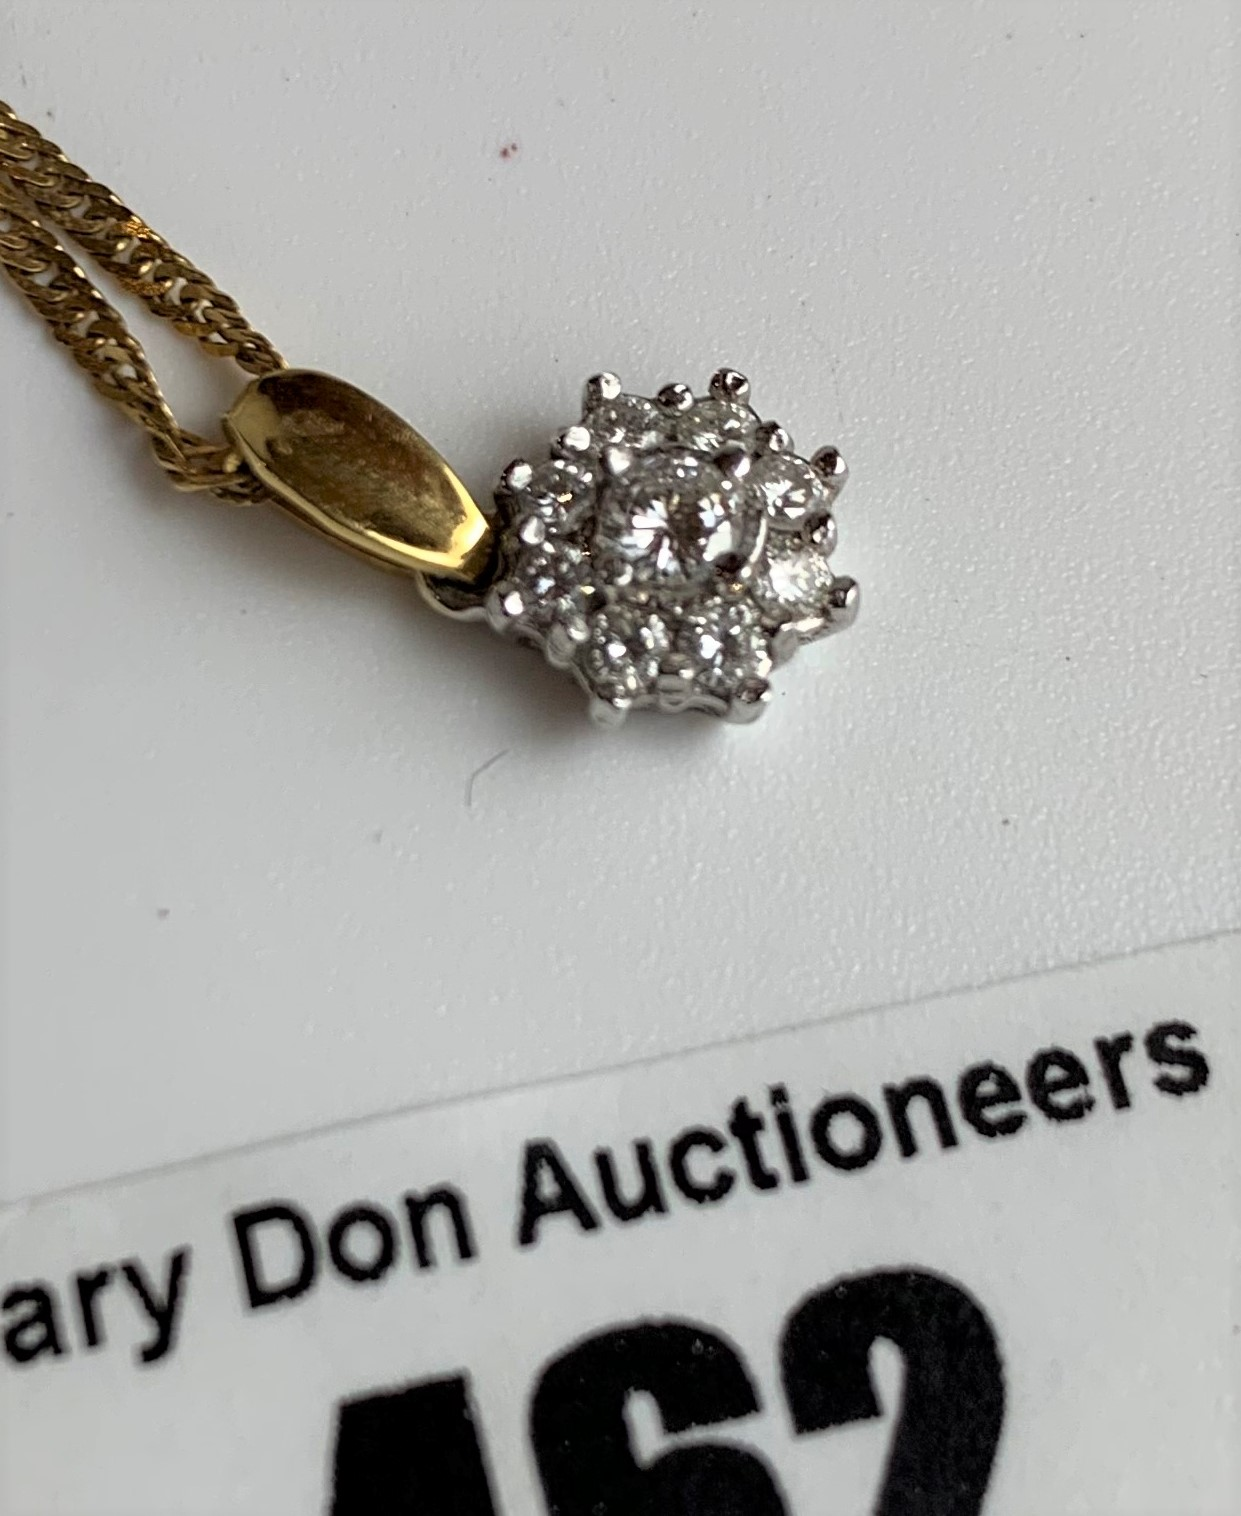 """9k gold necklace, length 15"""" and 18k gold diamond pendant, total w: 3.6 gms - Image 2 of 5"""